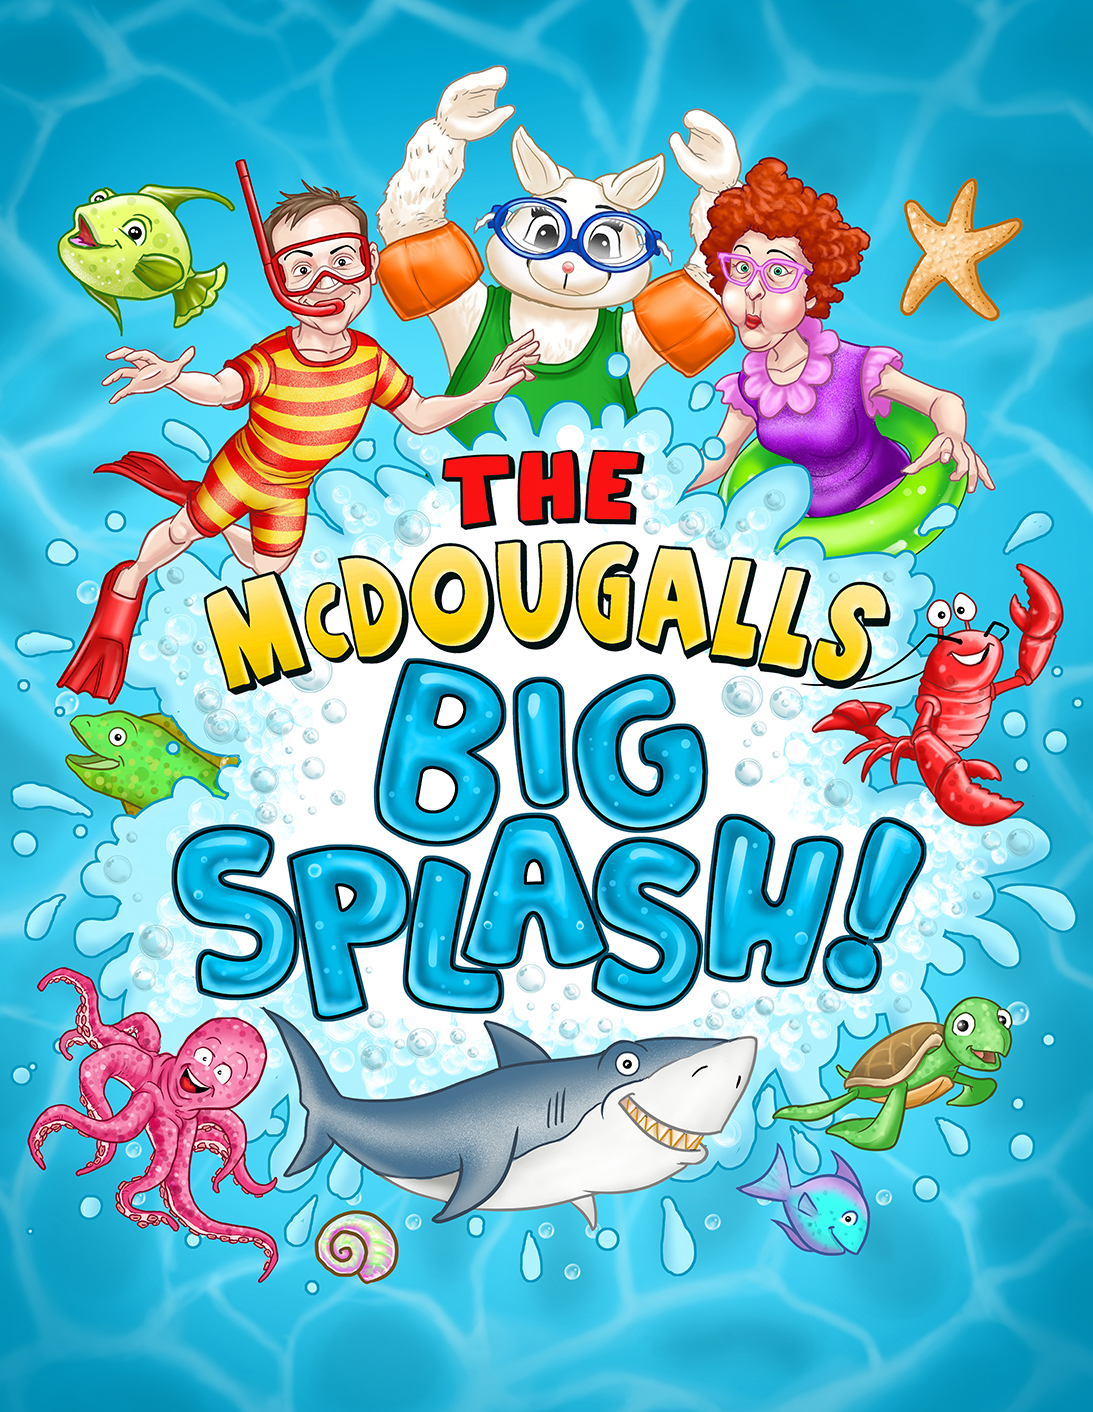 The McDougalls Big Splash